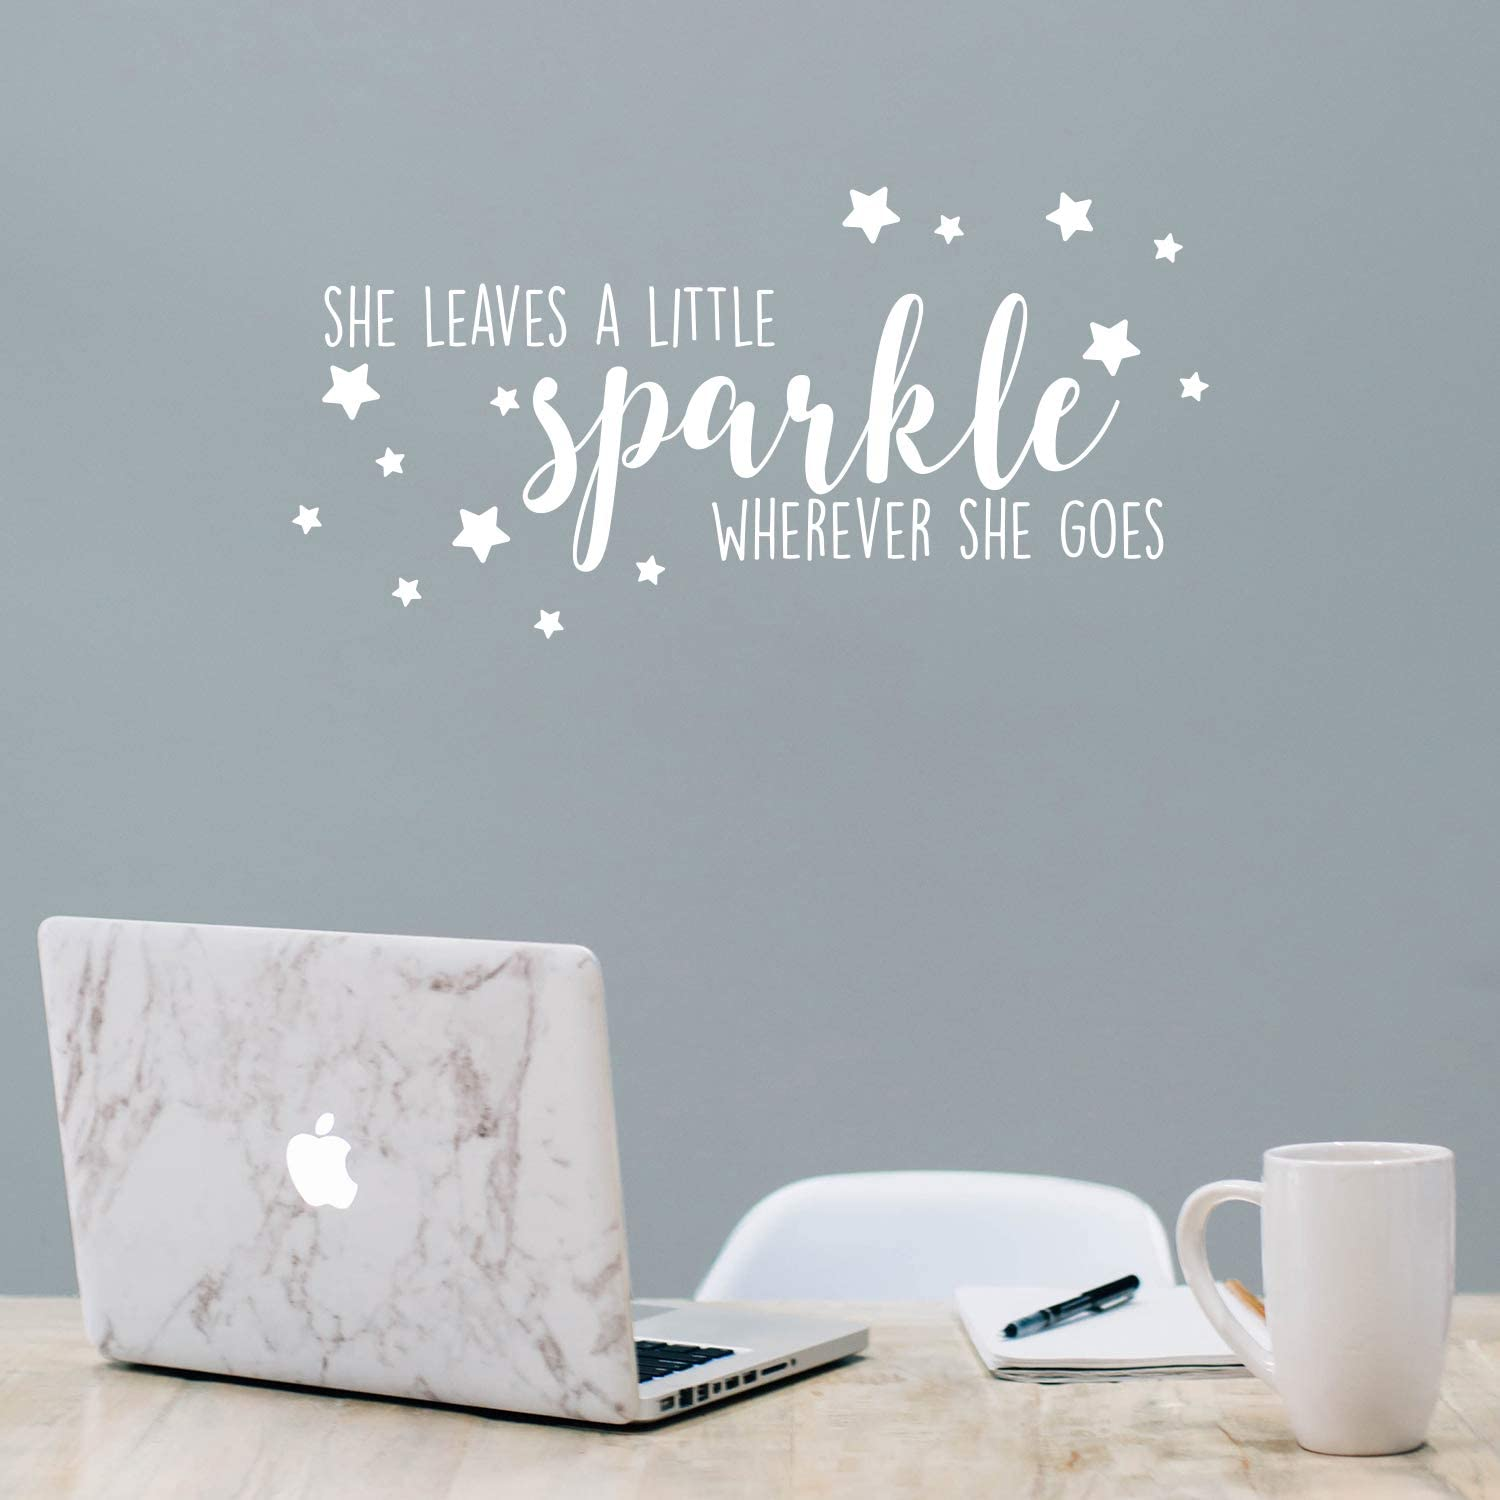 """Vinyl Wall Art Decal - She Leaves A Little Sparkle Wherever She Goes - 11"""" x 23"""" - Trendy Inspirational Cute Positive Girly Quote Sticker for Girls Room Closet Playroom Living Room Office Yoga Decor"""